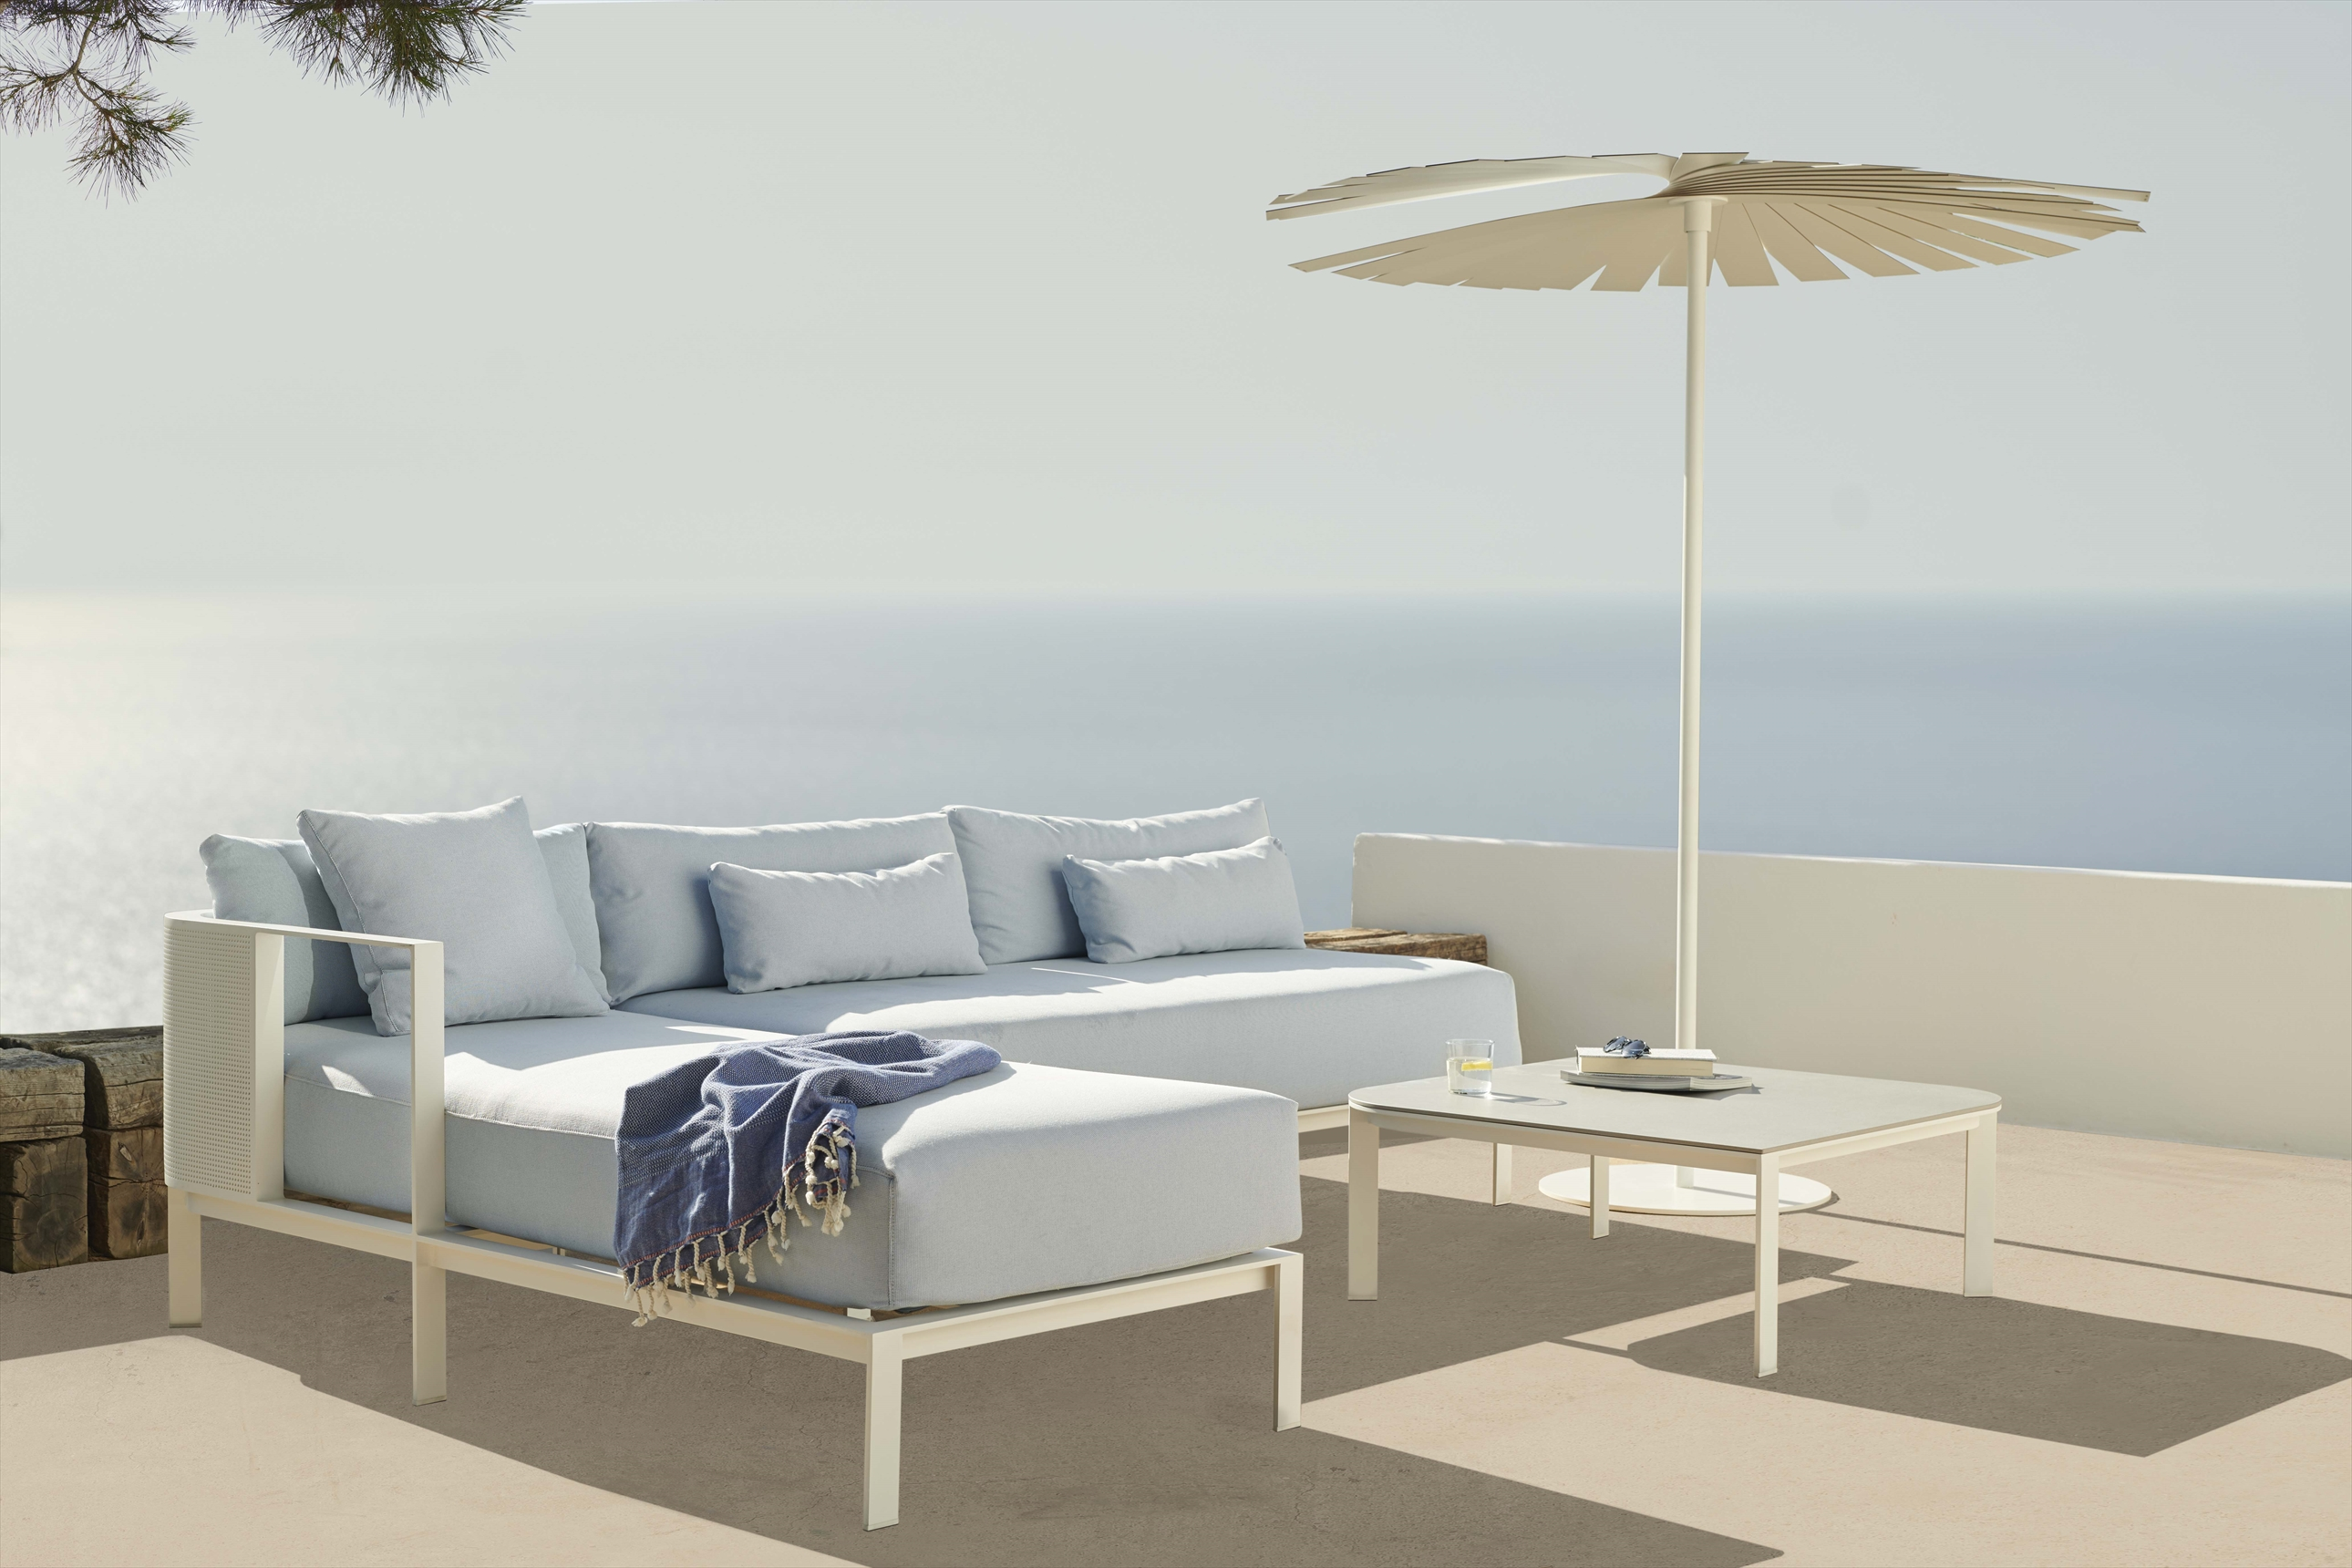 mood_lounging_gandiablasco_solanas